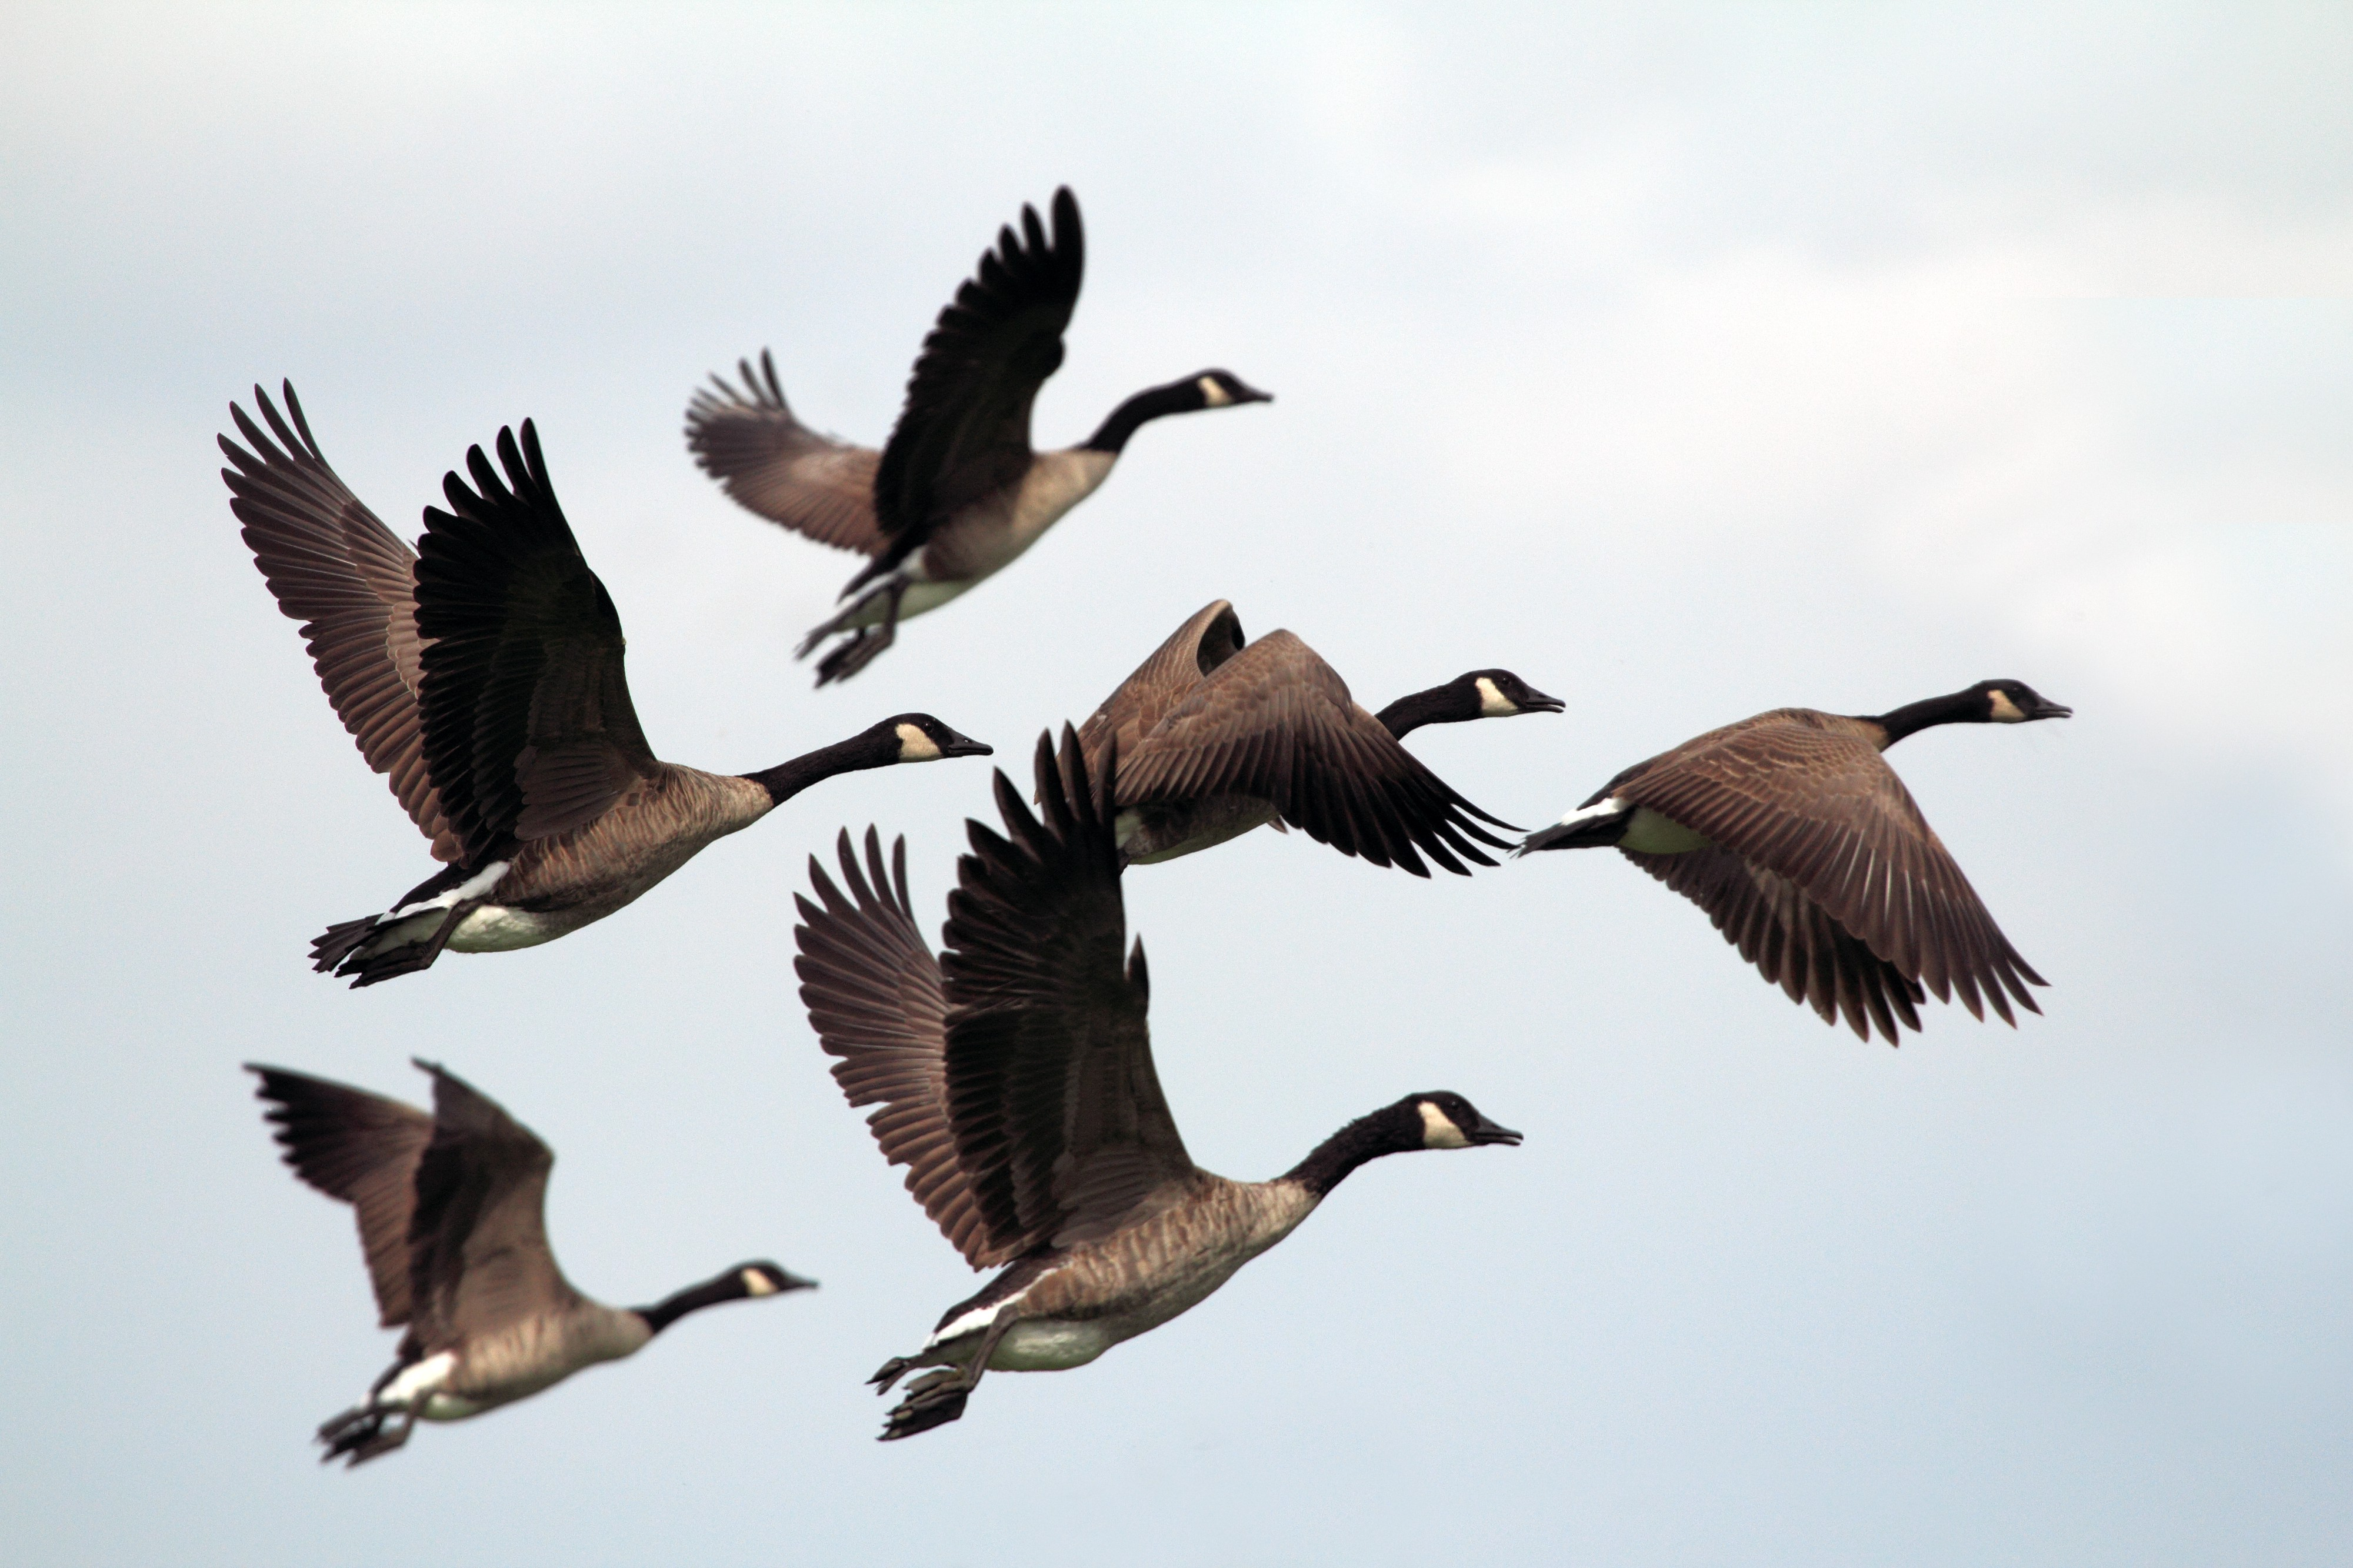 Seven Canada geese in flight together